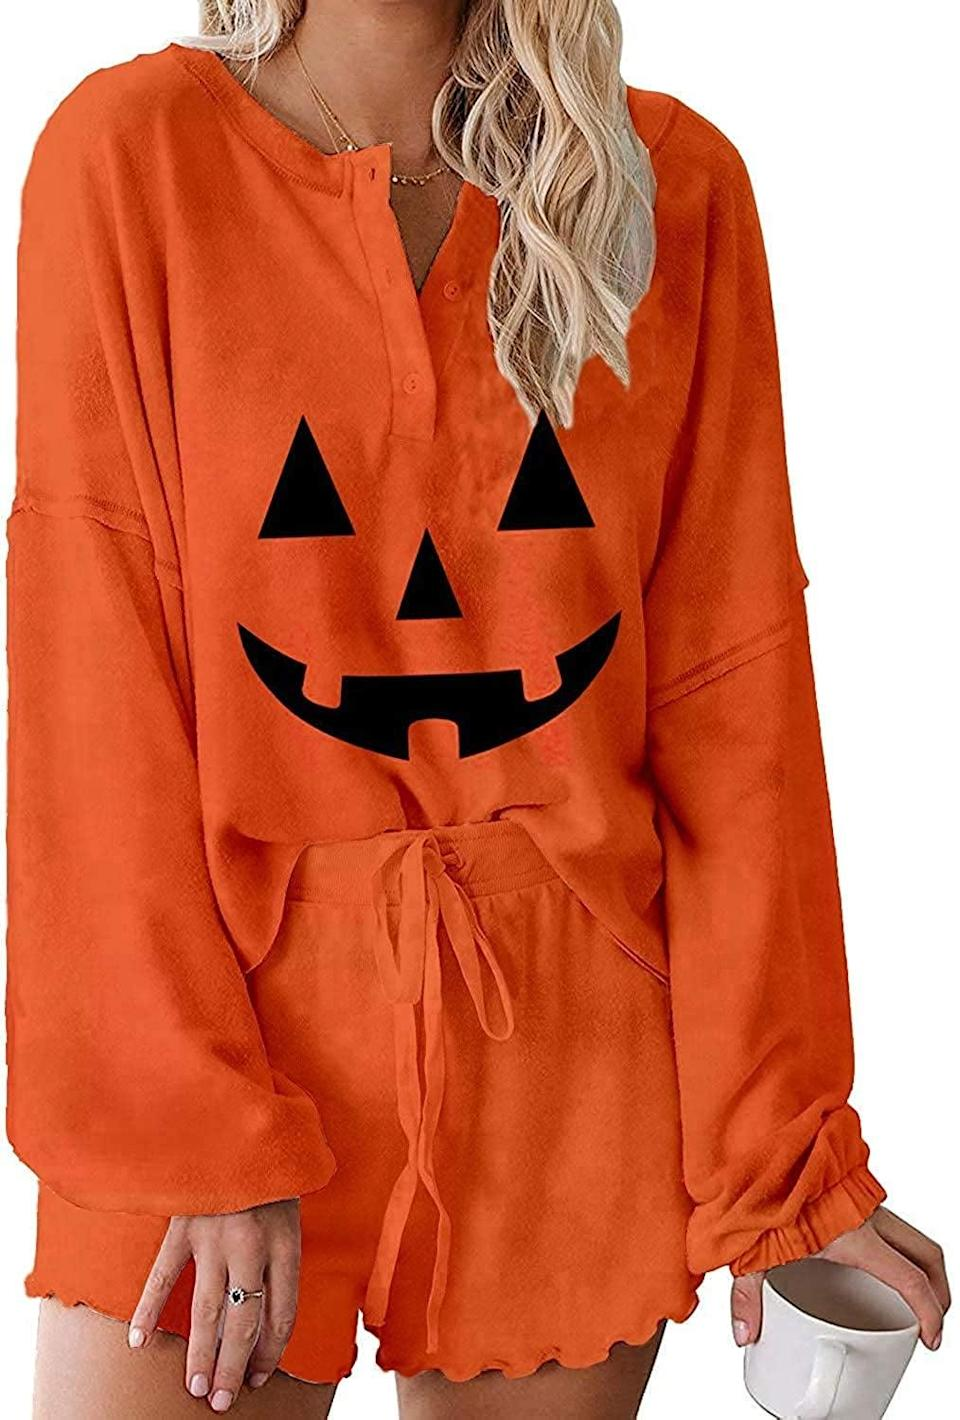 <p>The <span>Women's Jack-o-Lantern Printed Ruffle Short Pajamas Set</span> ($38, originally $40) is a soft and comfortable find that's perfect for those who love to embrace bold colors. The set is loose fitting with a long sleeve top and adjustable shorts.</p>